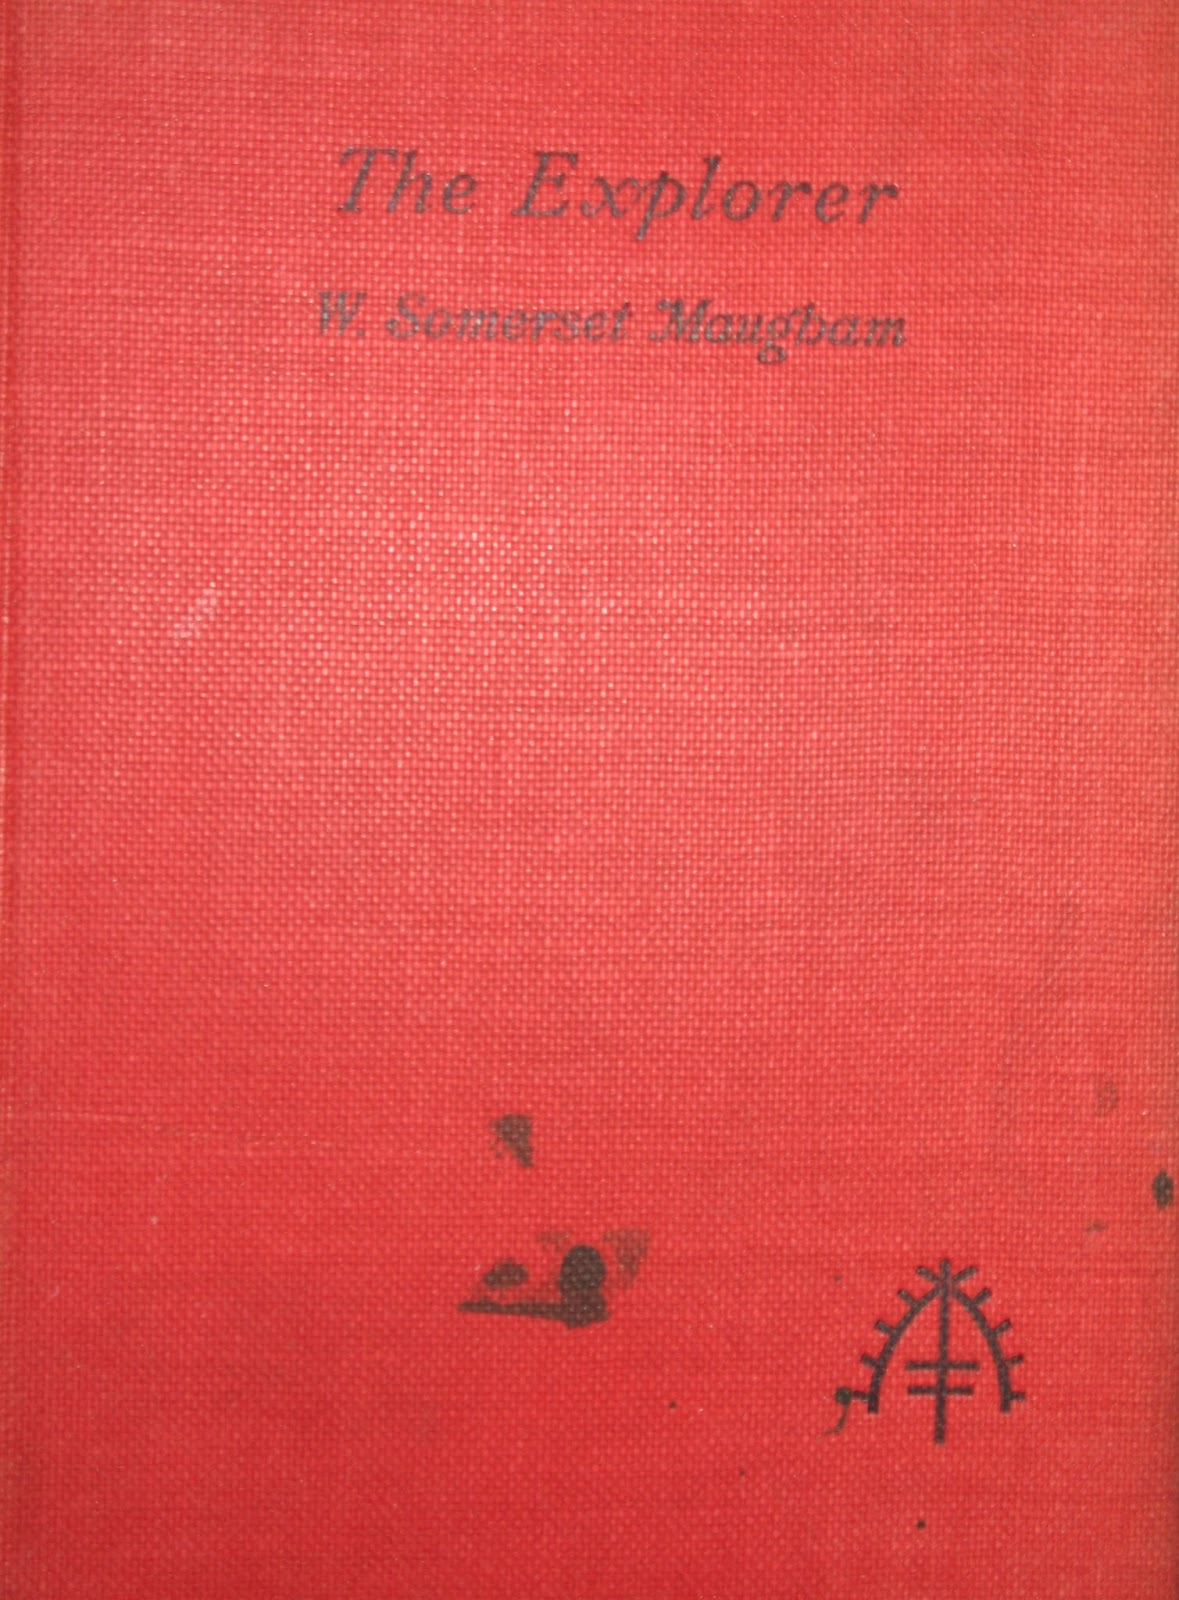 The Explorer by W. Somerset Maugham, First Edition 1912